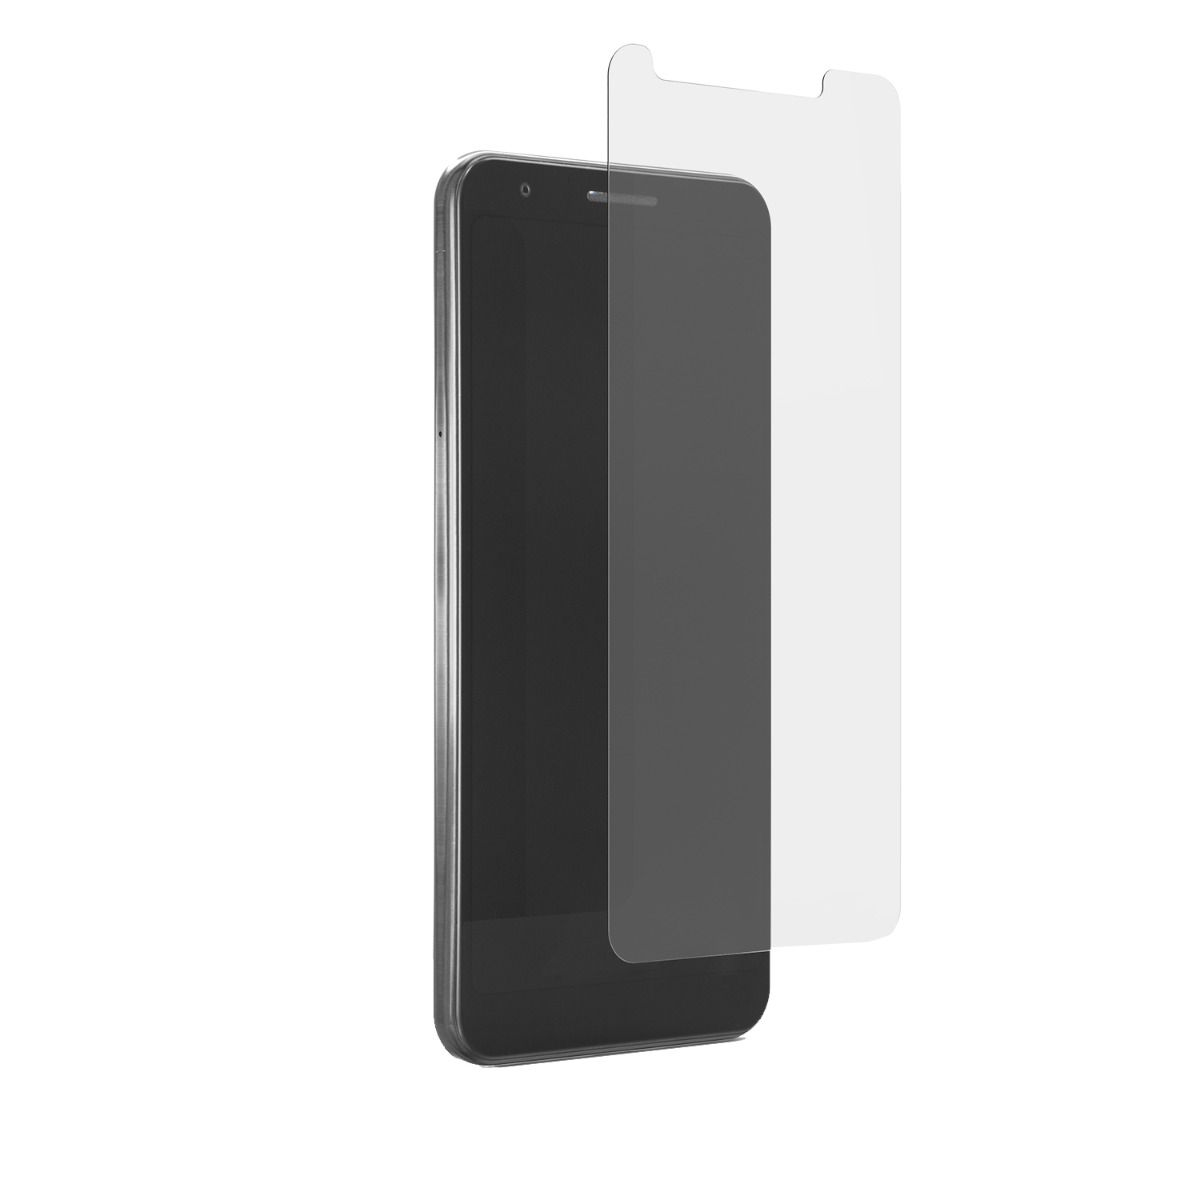 Google Pixel 2 XL High-Definition Curved Glass Screen Protector with Alignment Tray